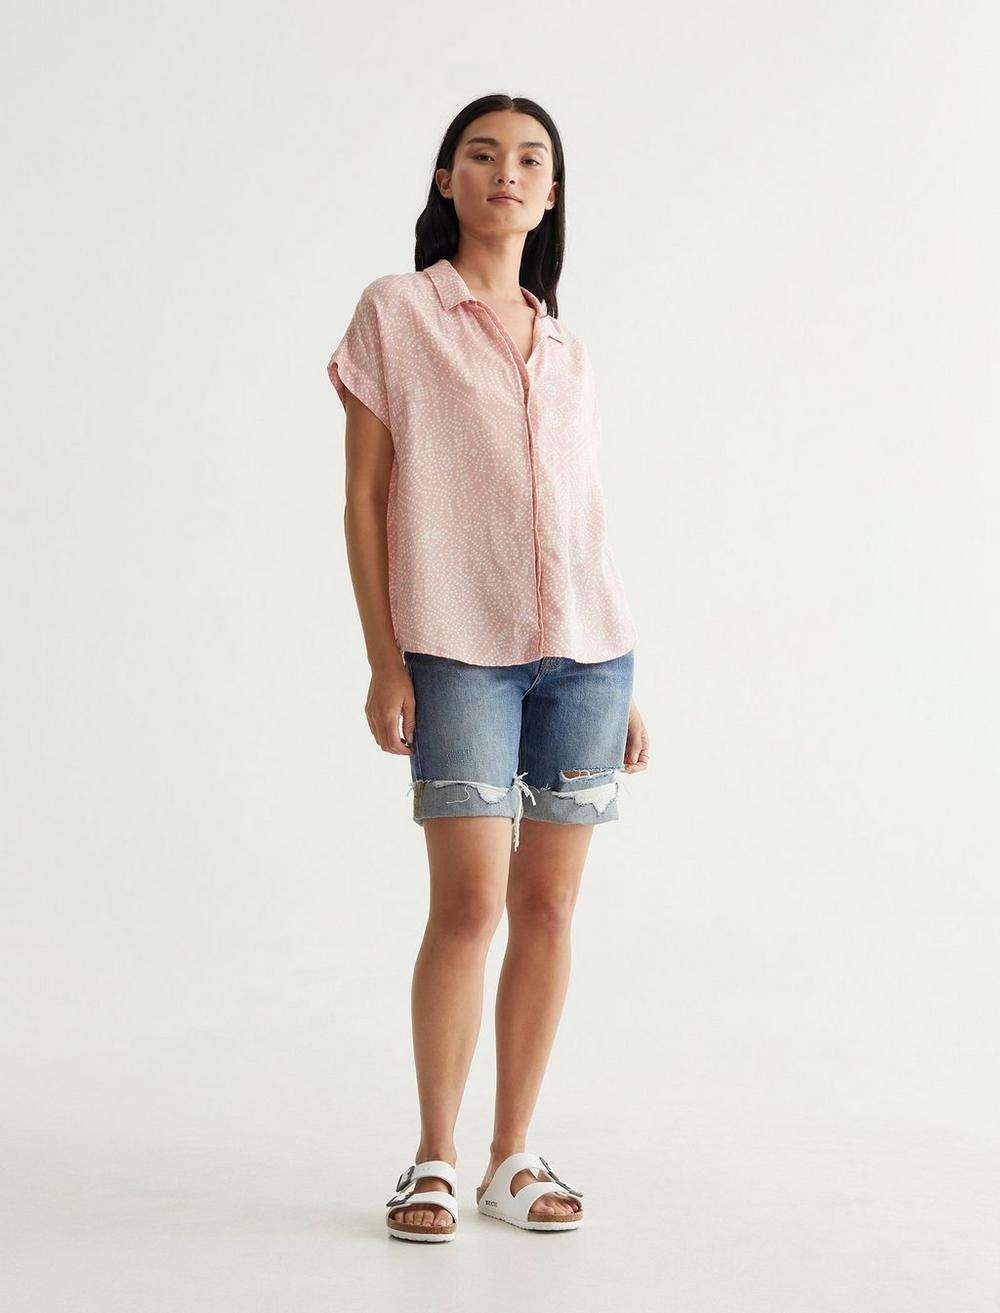 SHORT SLEEVE TIE FRONT SHIRT, image 2